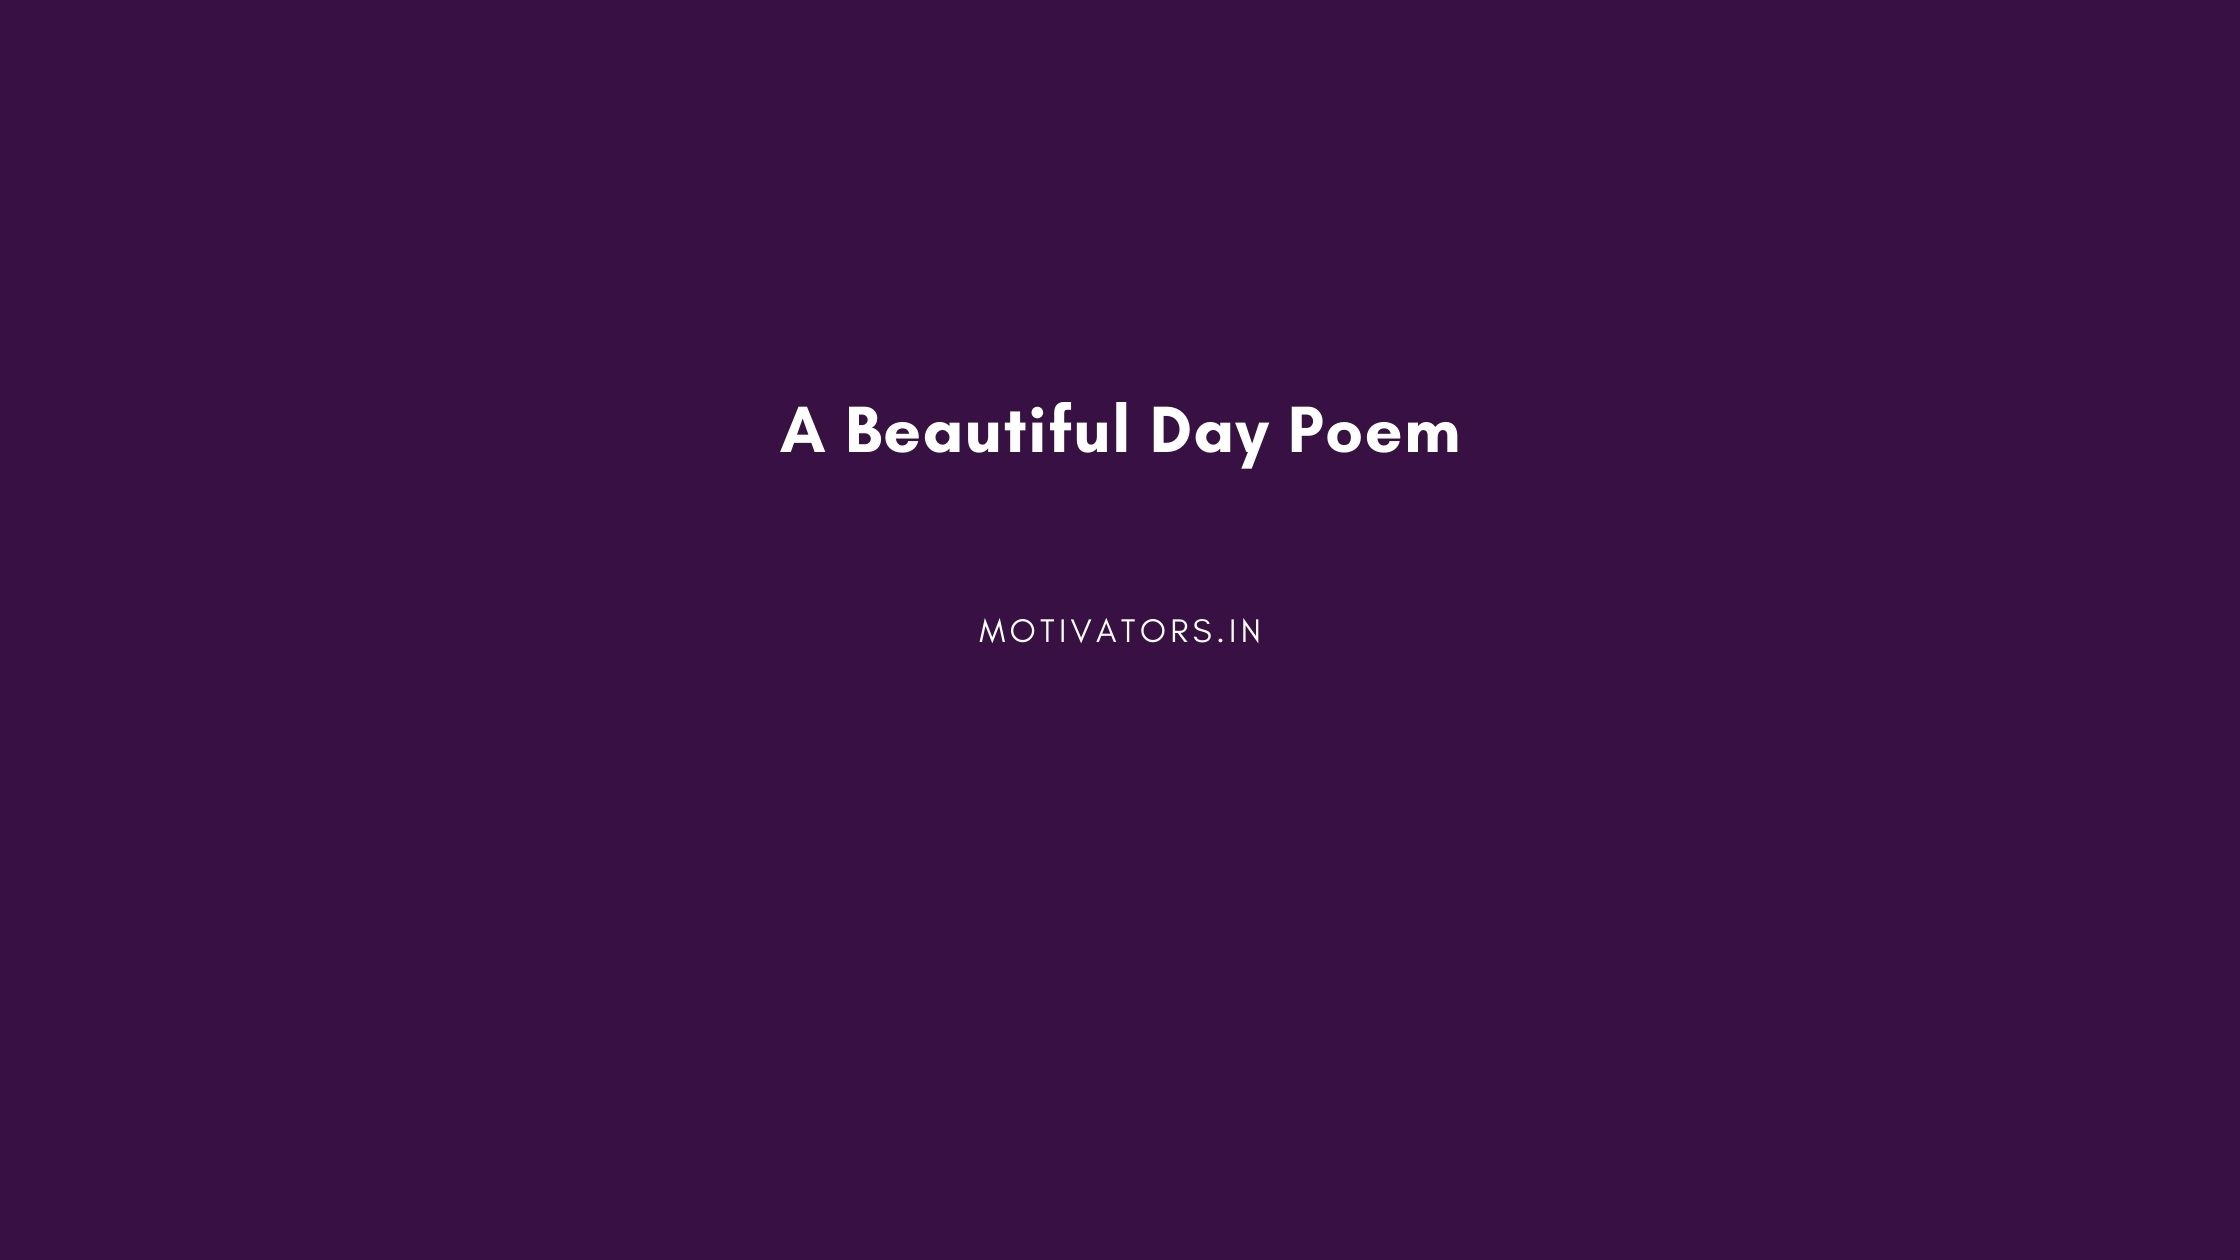 A Beautiful Day Poem